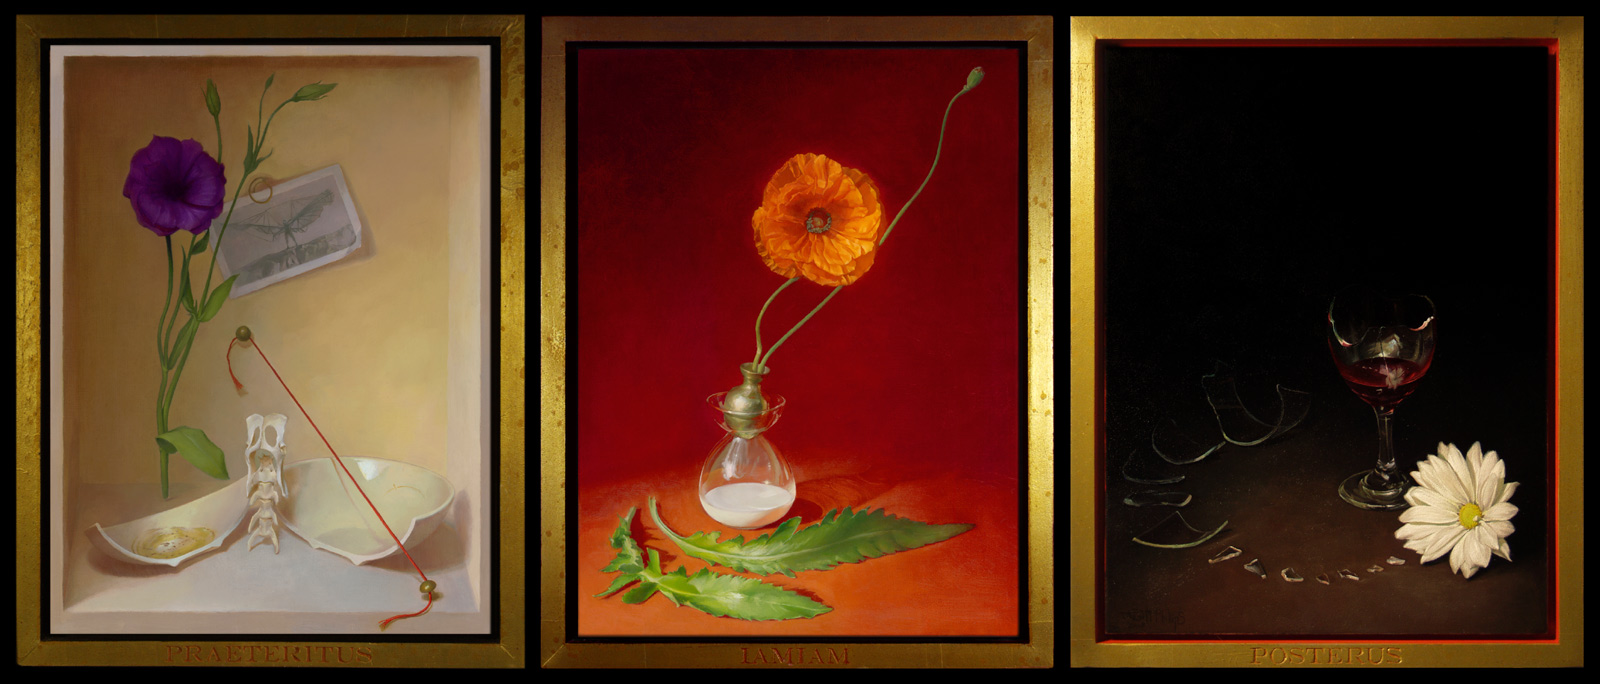 The Completed Triptych